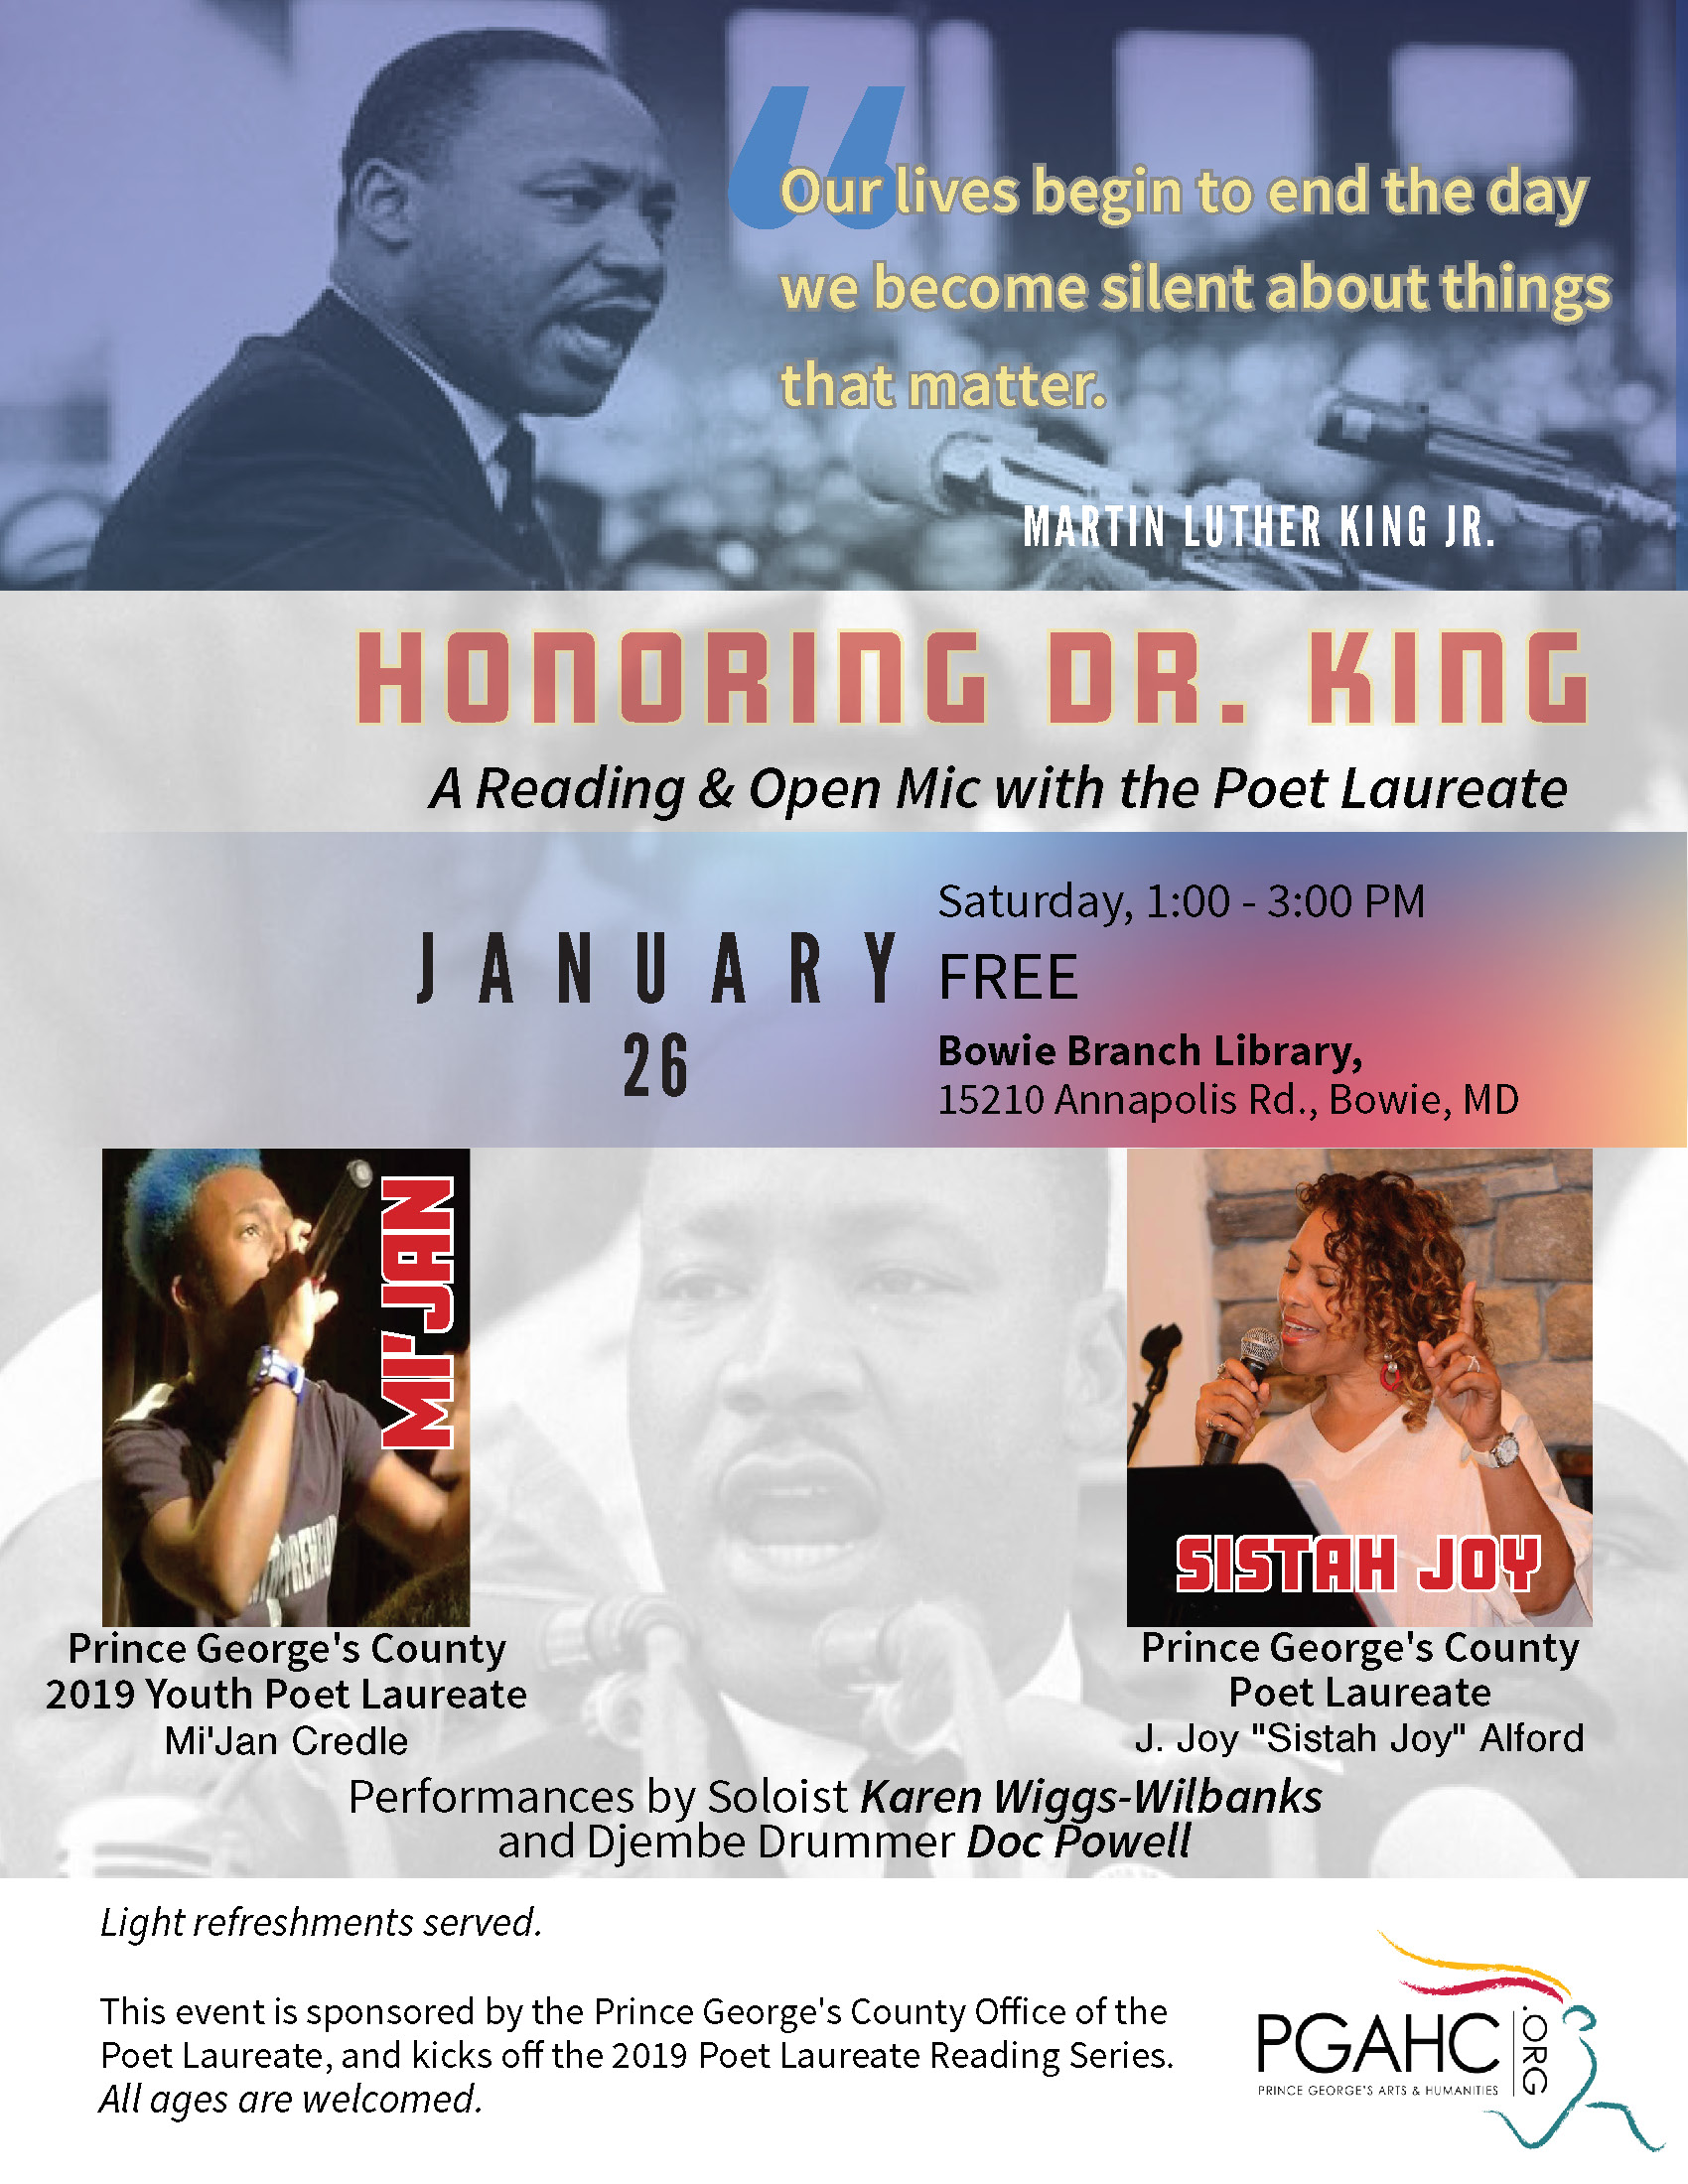 mlk poetry26jan1-3pm